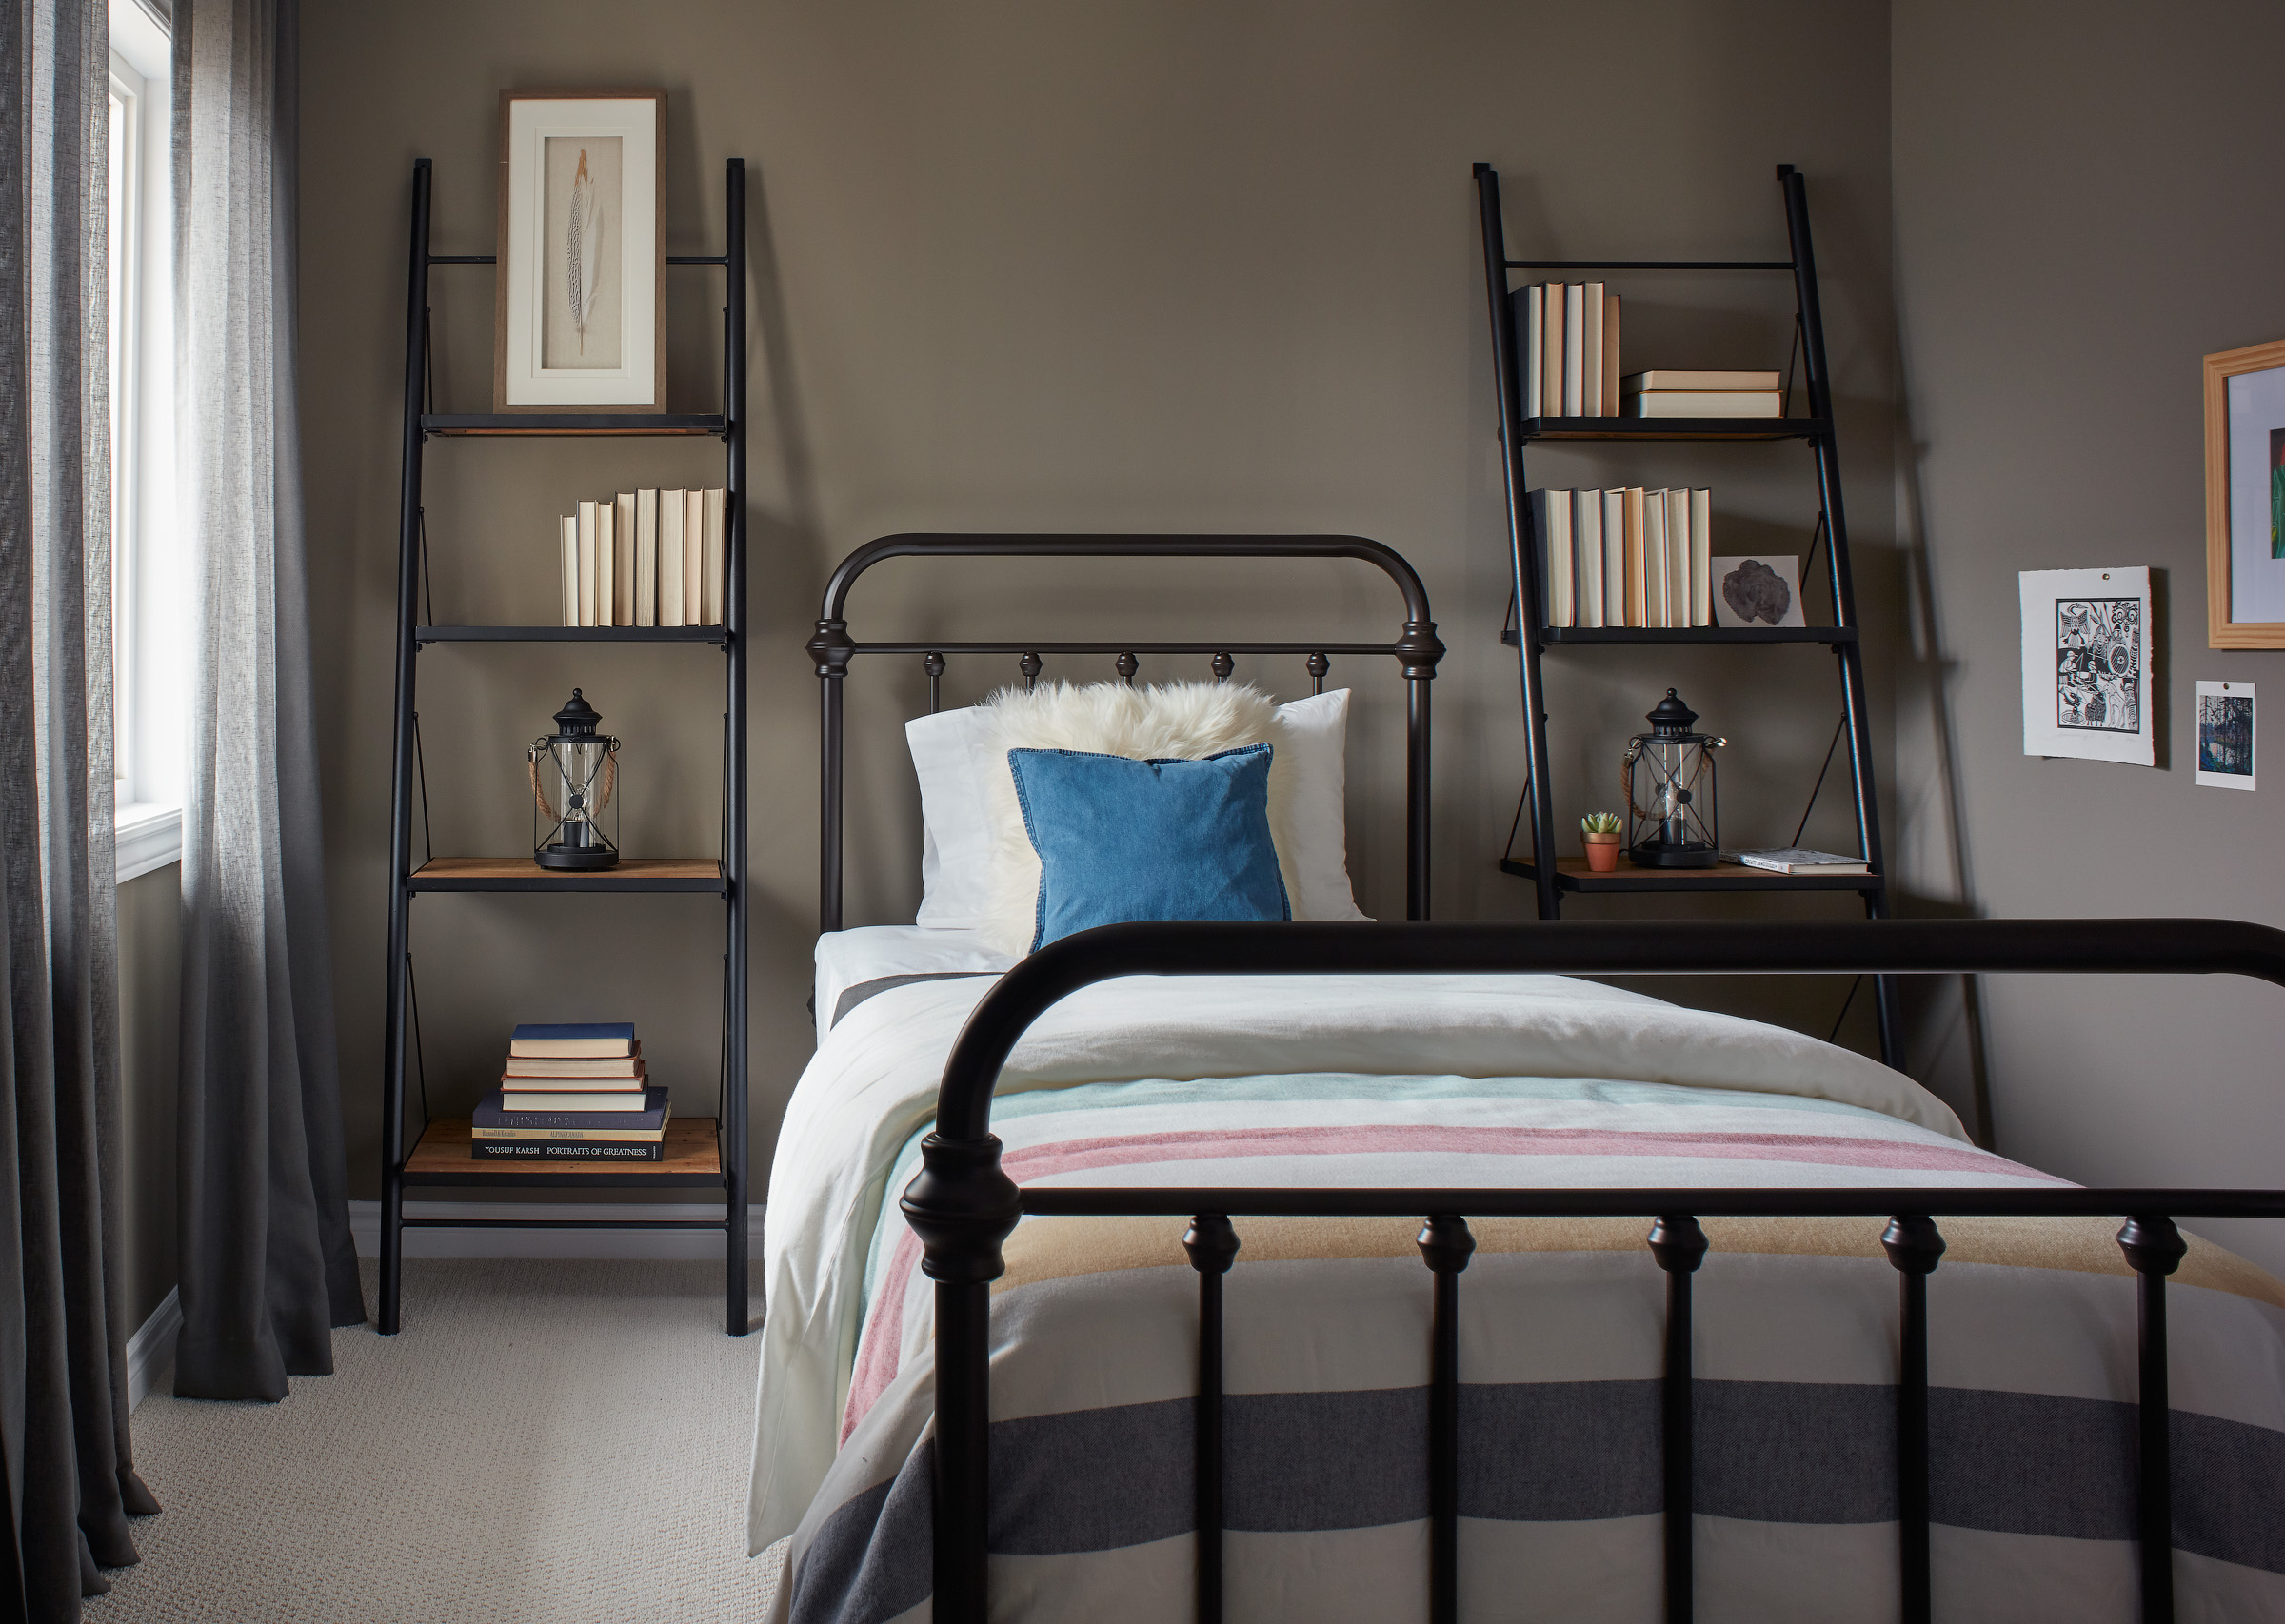 Industrial Ranch bedroom with black metal bed, grey-green walls, and ladder shelves against the wall